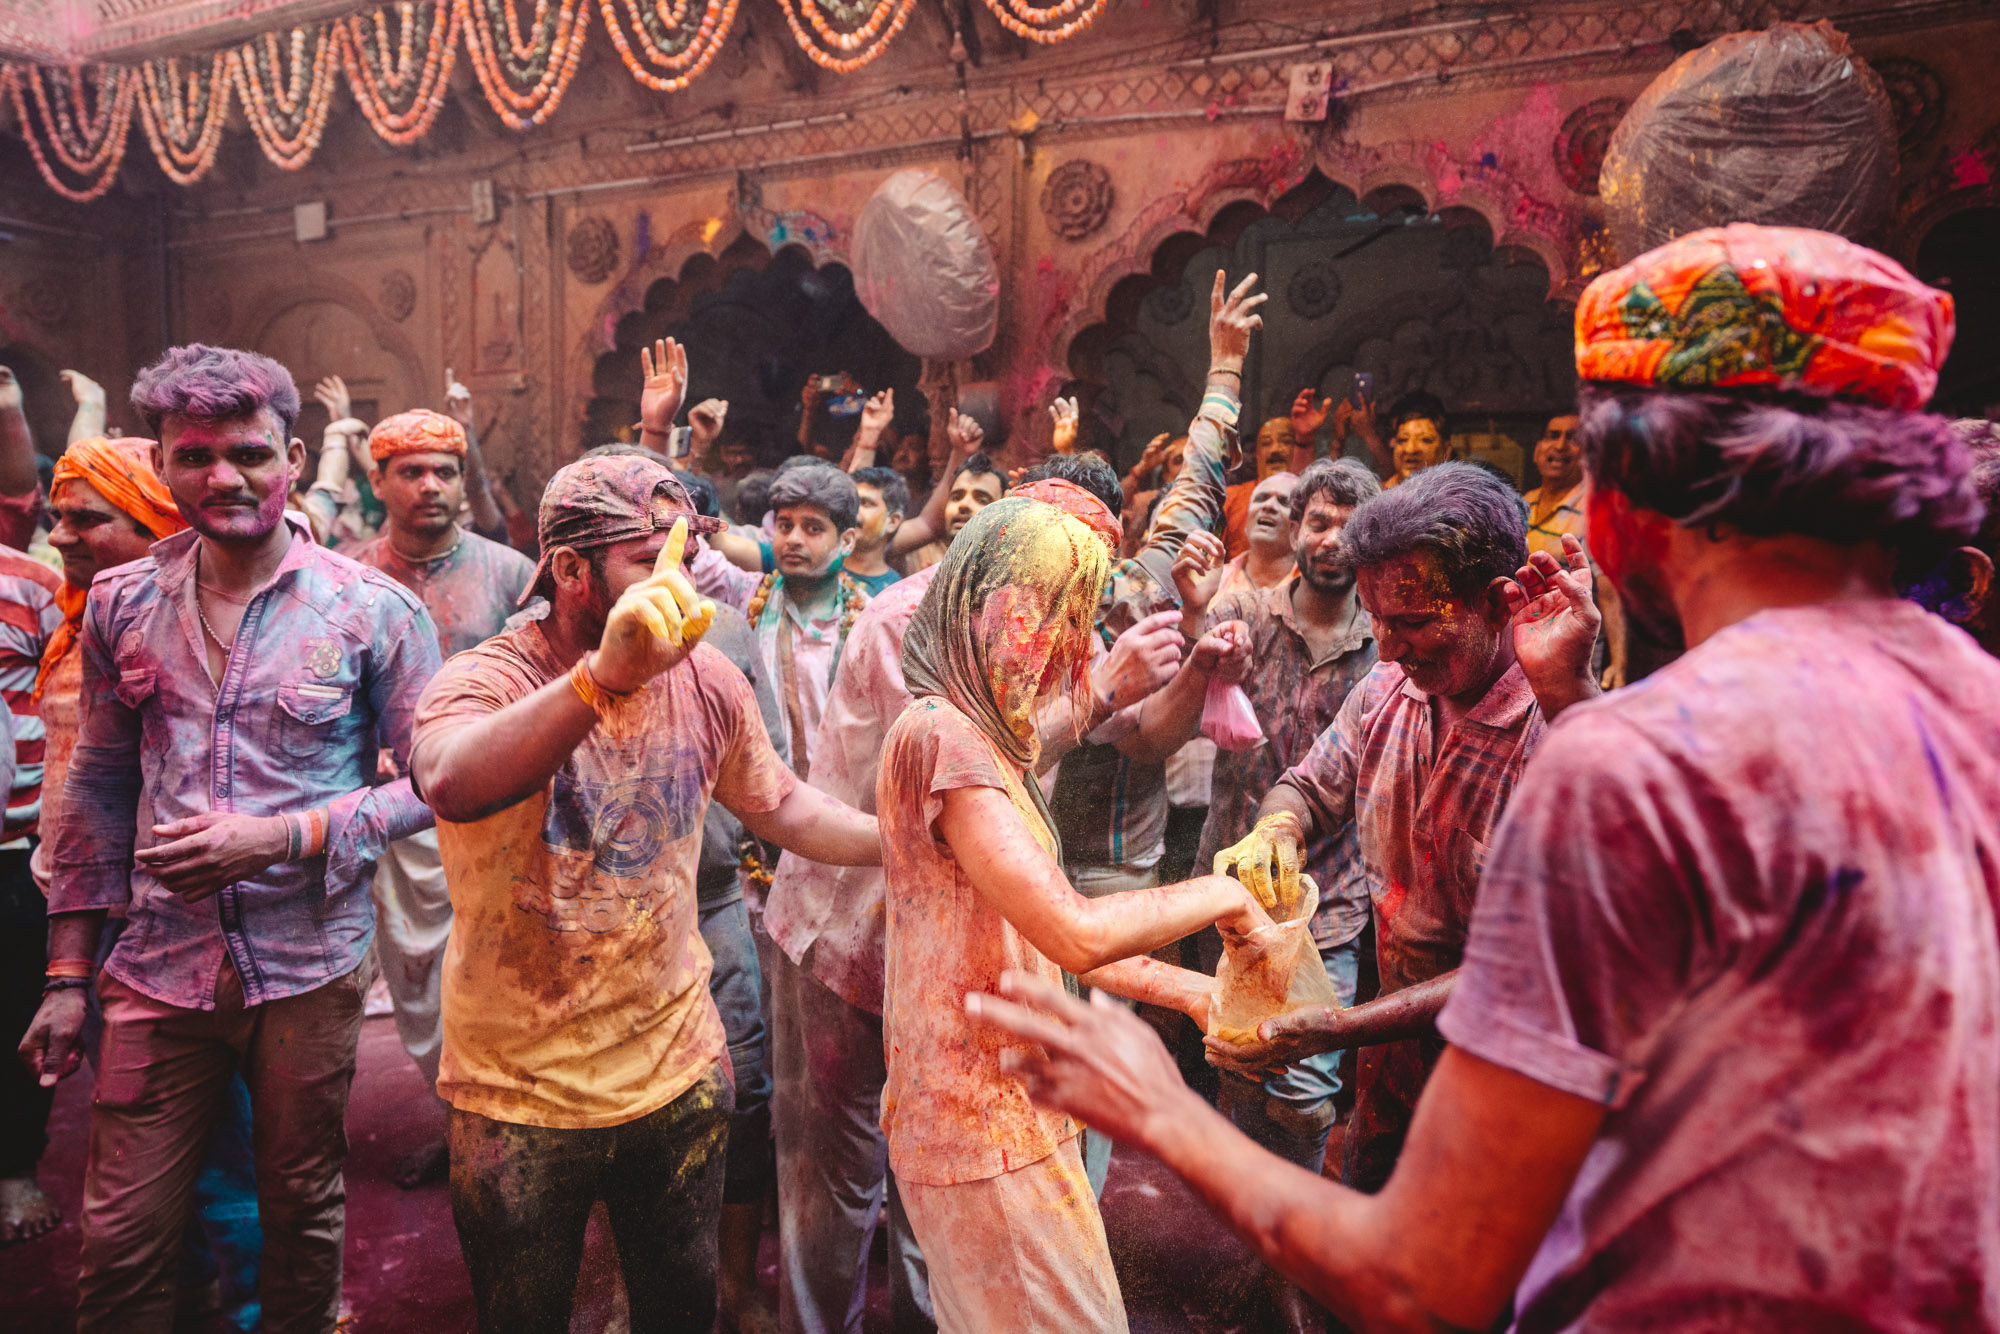 Woman and men covered in colorful powder, dancing during Holi Festival in Vrindavan and Mathura, India